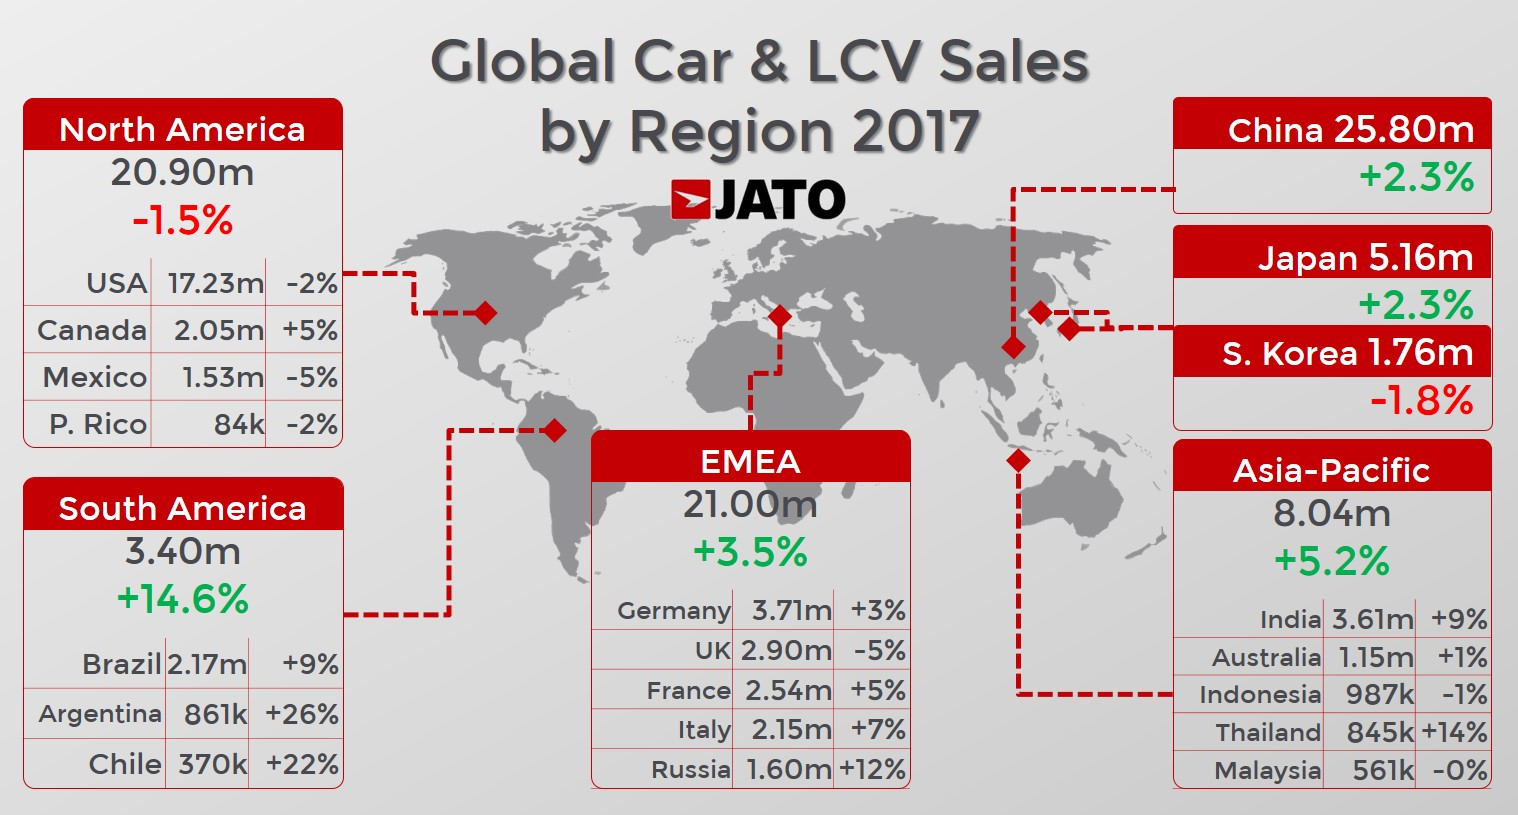 Global Car Sales Up By 2 4 In 2017 Due To Soaring Demand In Europe